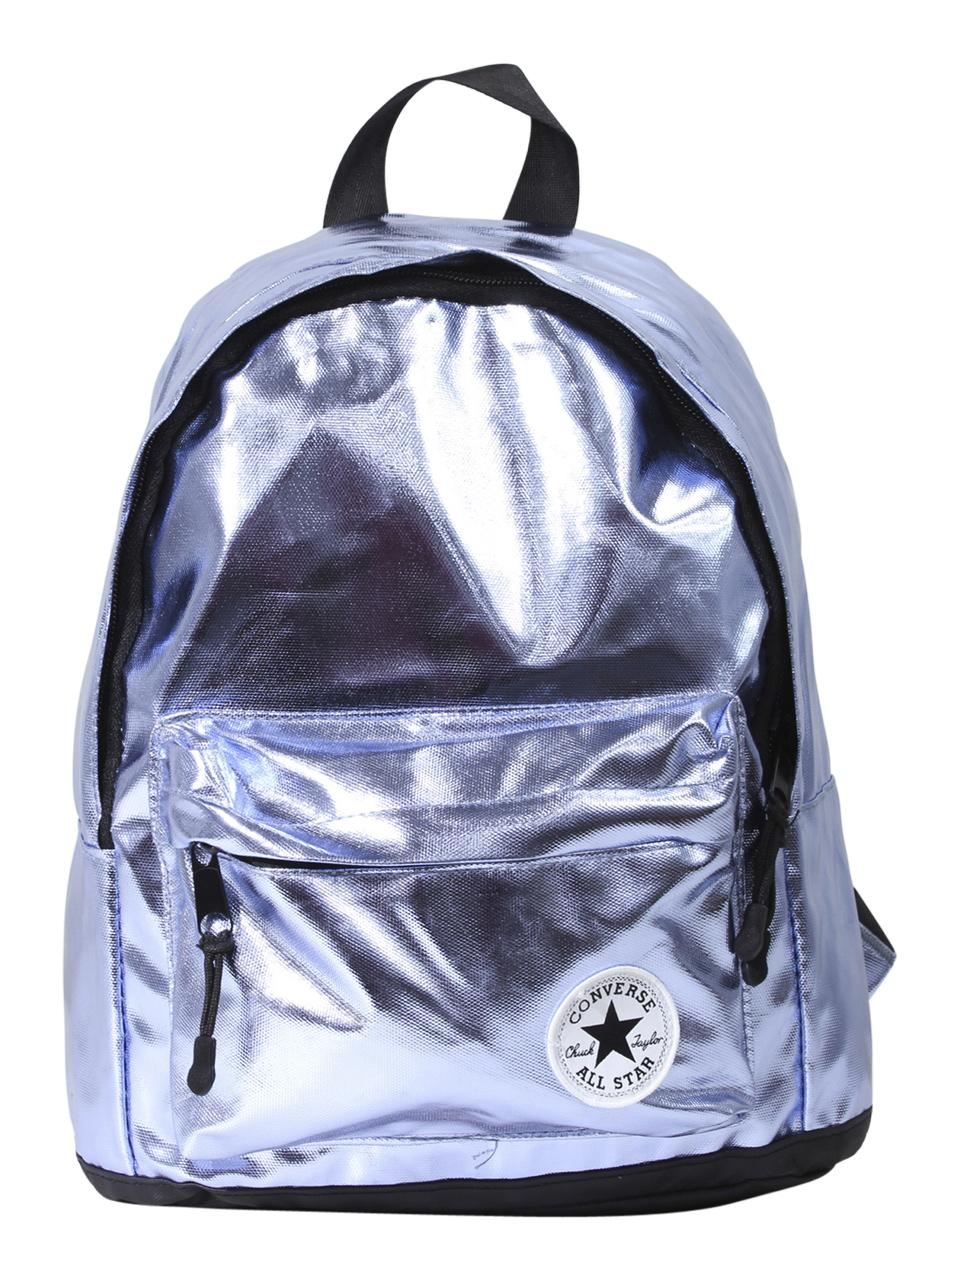 Converse Kid's Daypack Small Metallic Backpack